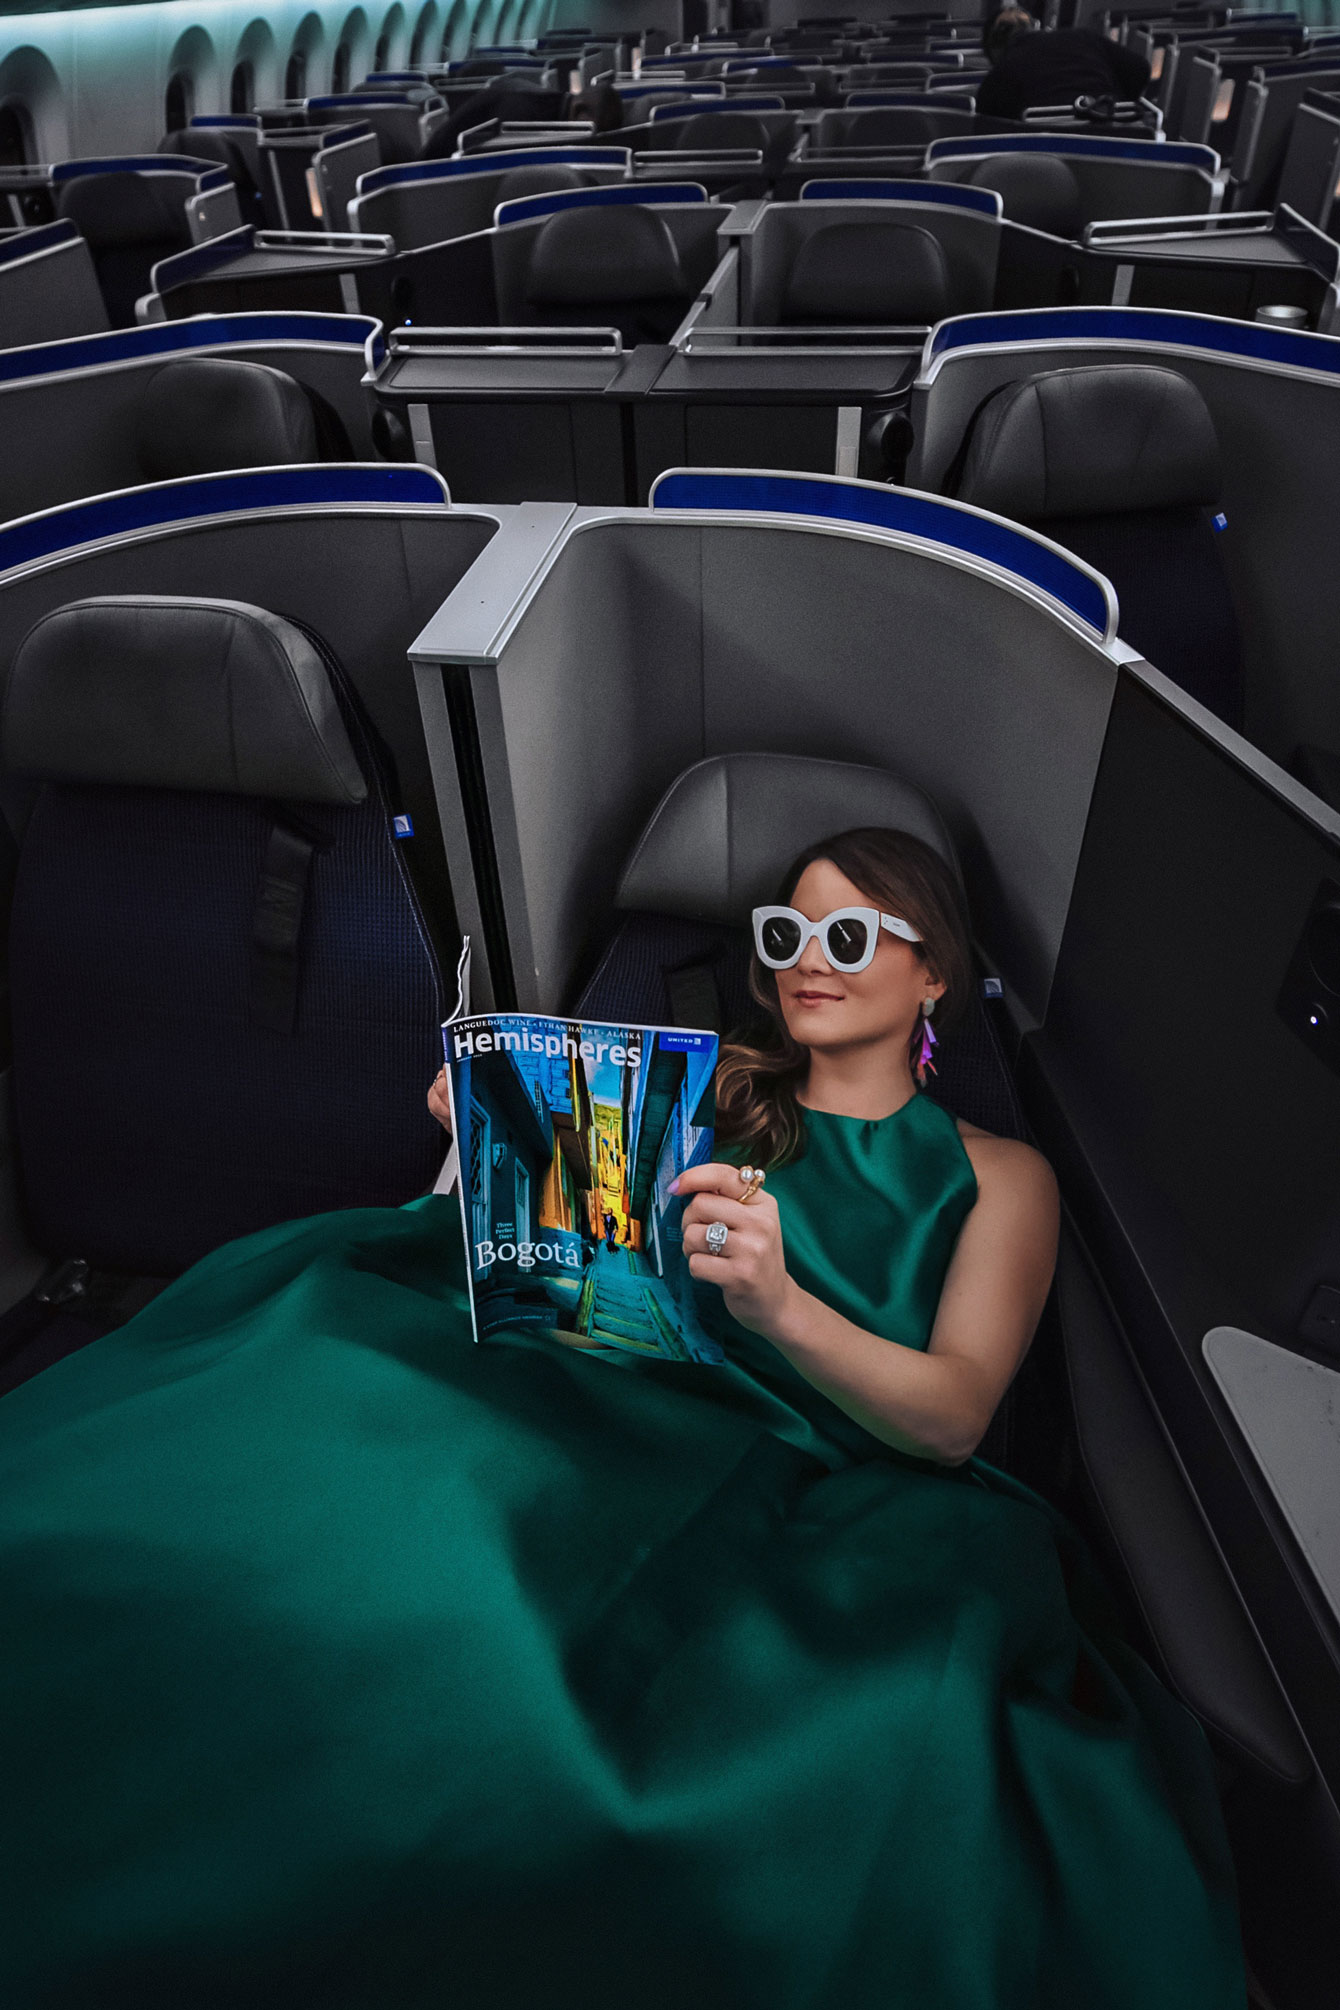 United Airlines 787 Polaris Seating